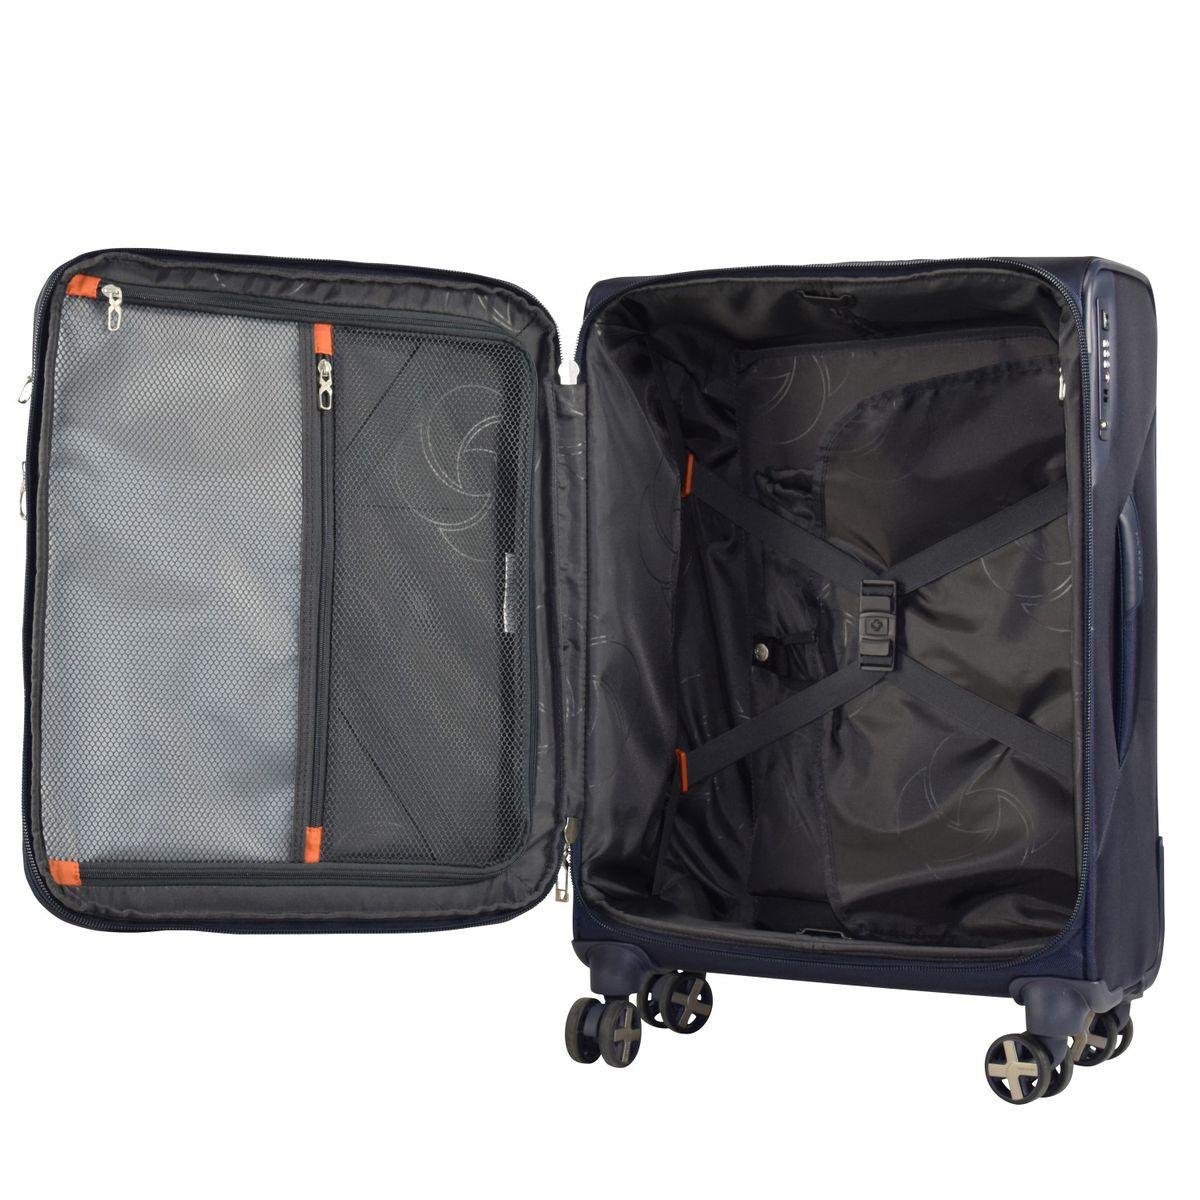 samsonite x blade 3 0 spinner 4 rollen trolley 71 cm black karstadt online shop. Black Bedroom Furniture Sets. Home Design Ideas